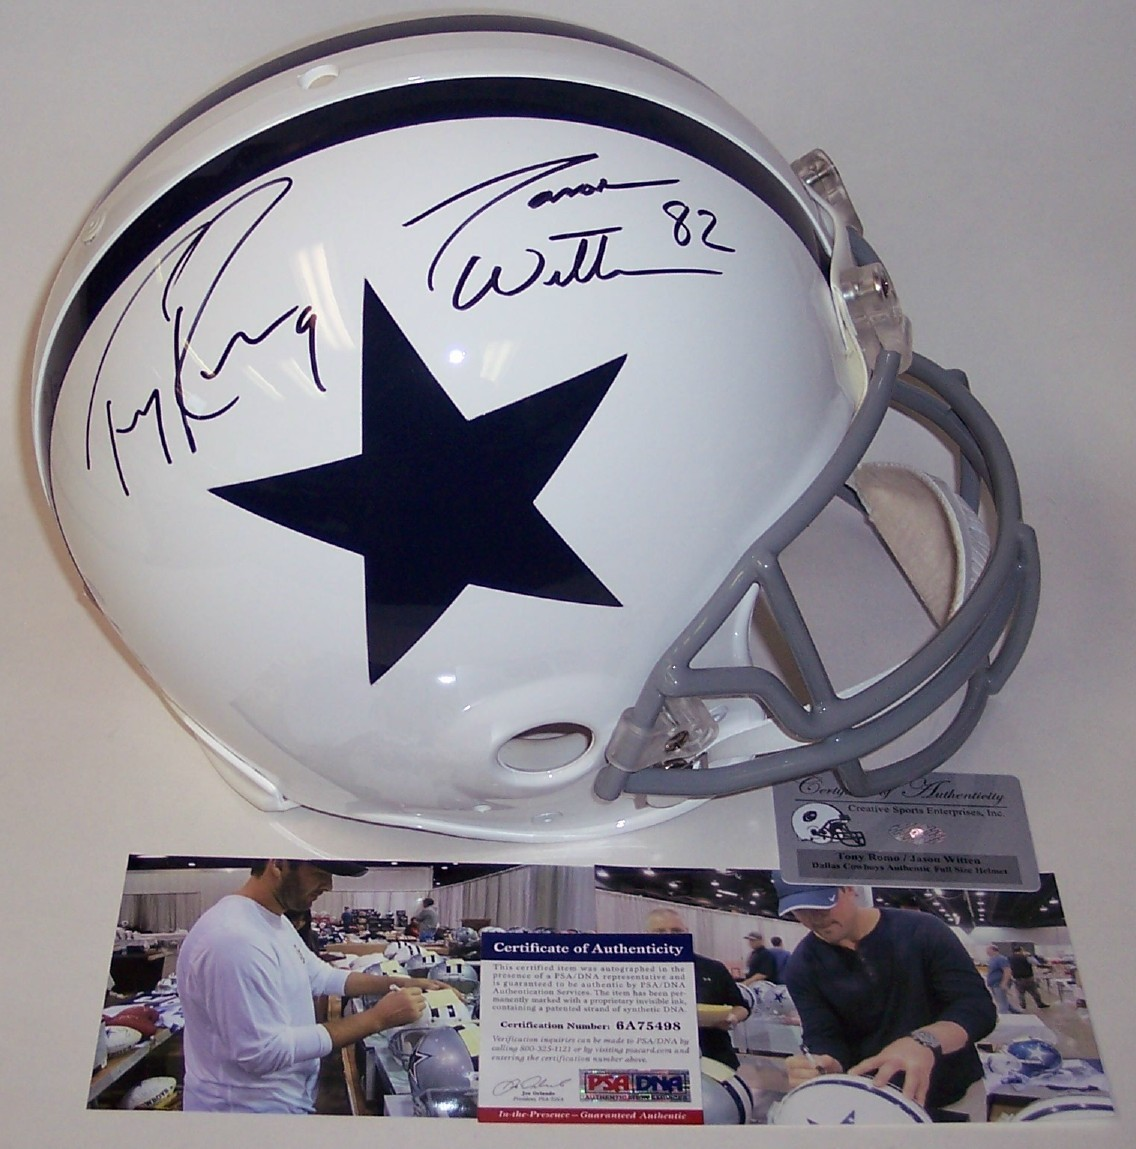 jason-witten-autographed-official-full-size-riddell-authentic-proline-football-helmet-dallas-cowboys-28-04054.1463020372.1280.1280.jpg